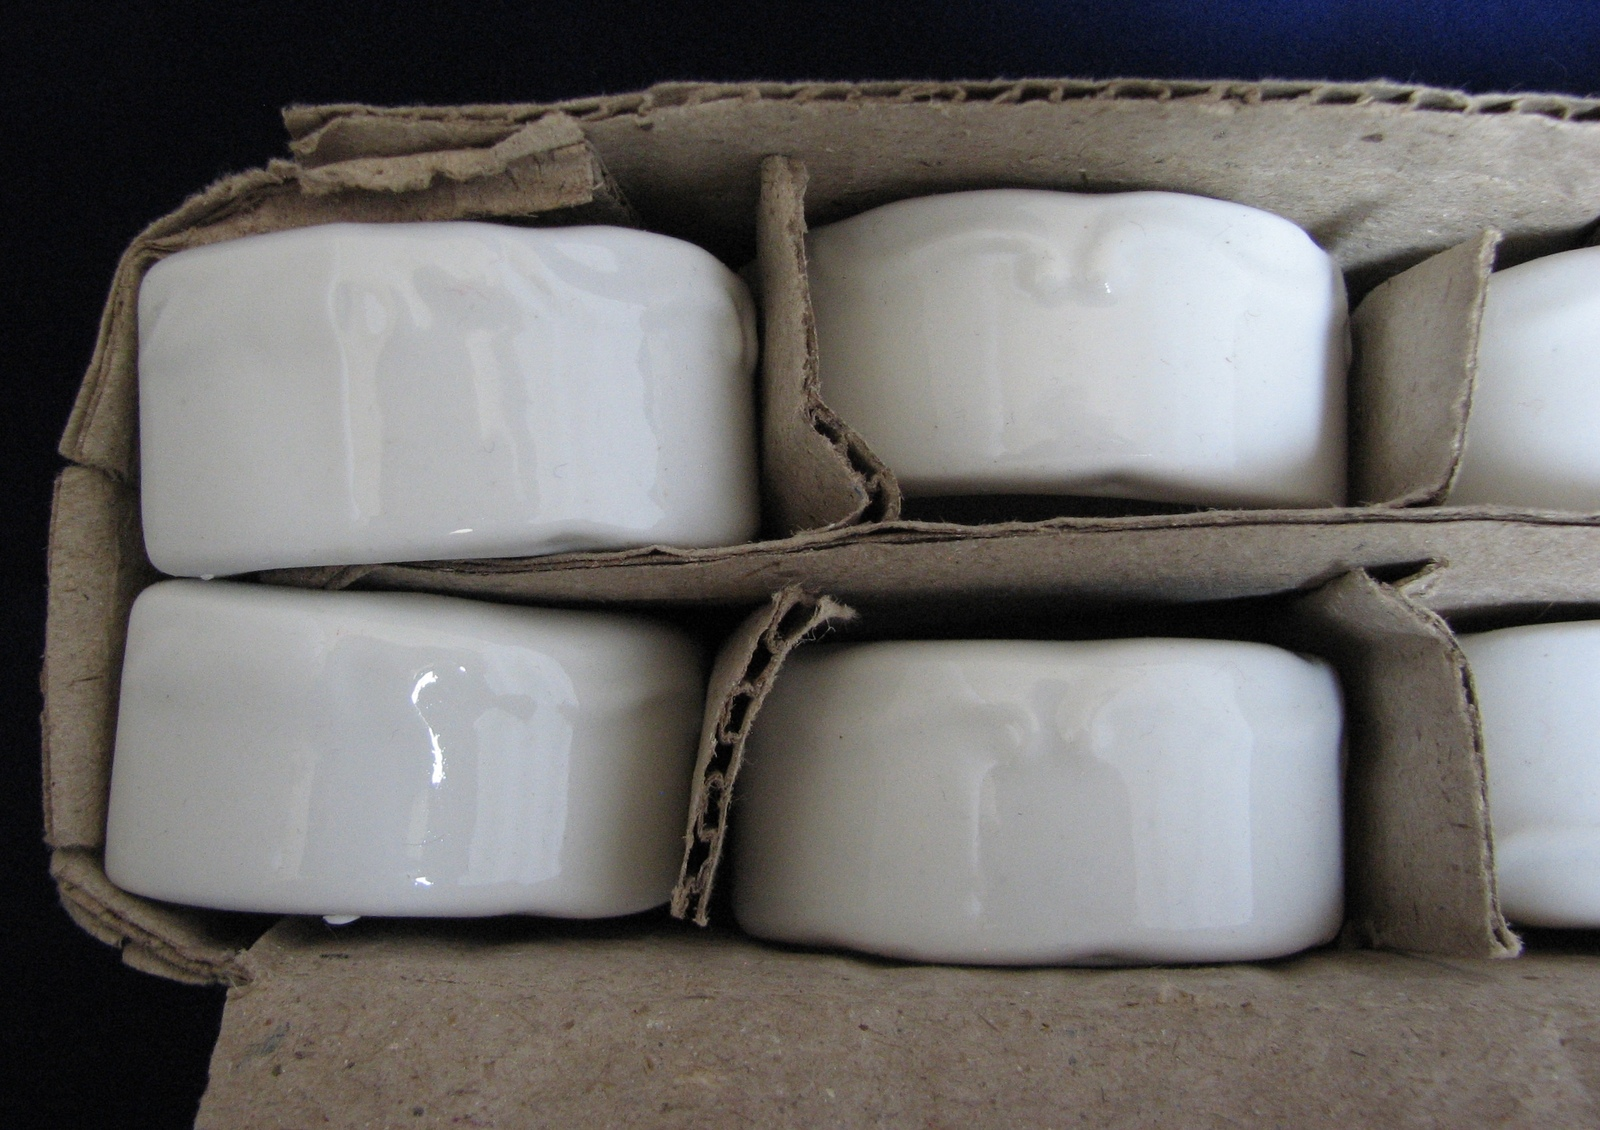 Vintage Napkin Holders White Porcelain Set of 6 Rings